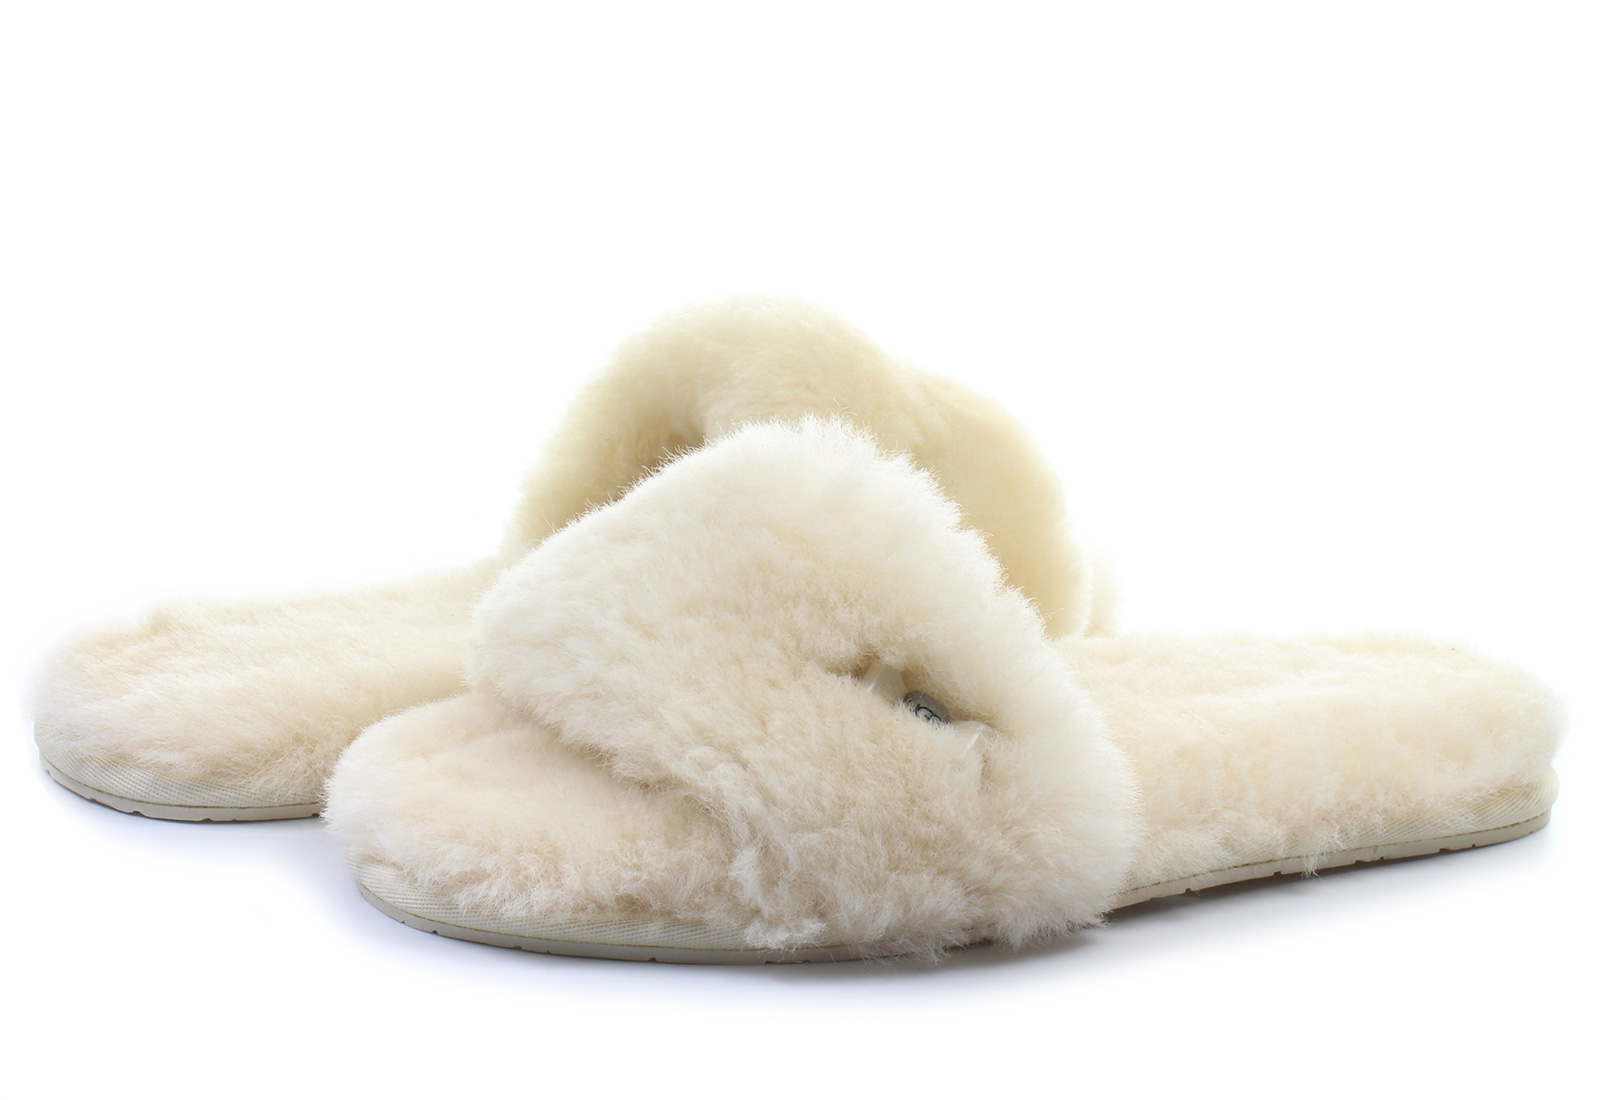 shearling sheepskin slippers with 3661 on Ugg Scuffette Ii Slippers Grey 2 also 291037422333 moreover Shearling Sheepskin Newsboy Hat Cognac P 883 also Chestnut Stoneman Mens Sheepskin Boot P47387 furthermore Womens Min onka Moccasins Sheepskin Hardsole Moccasin Slippers Tan.